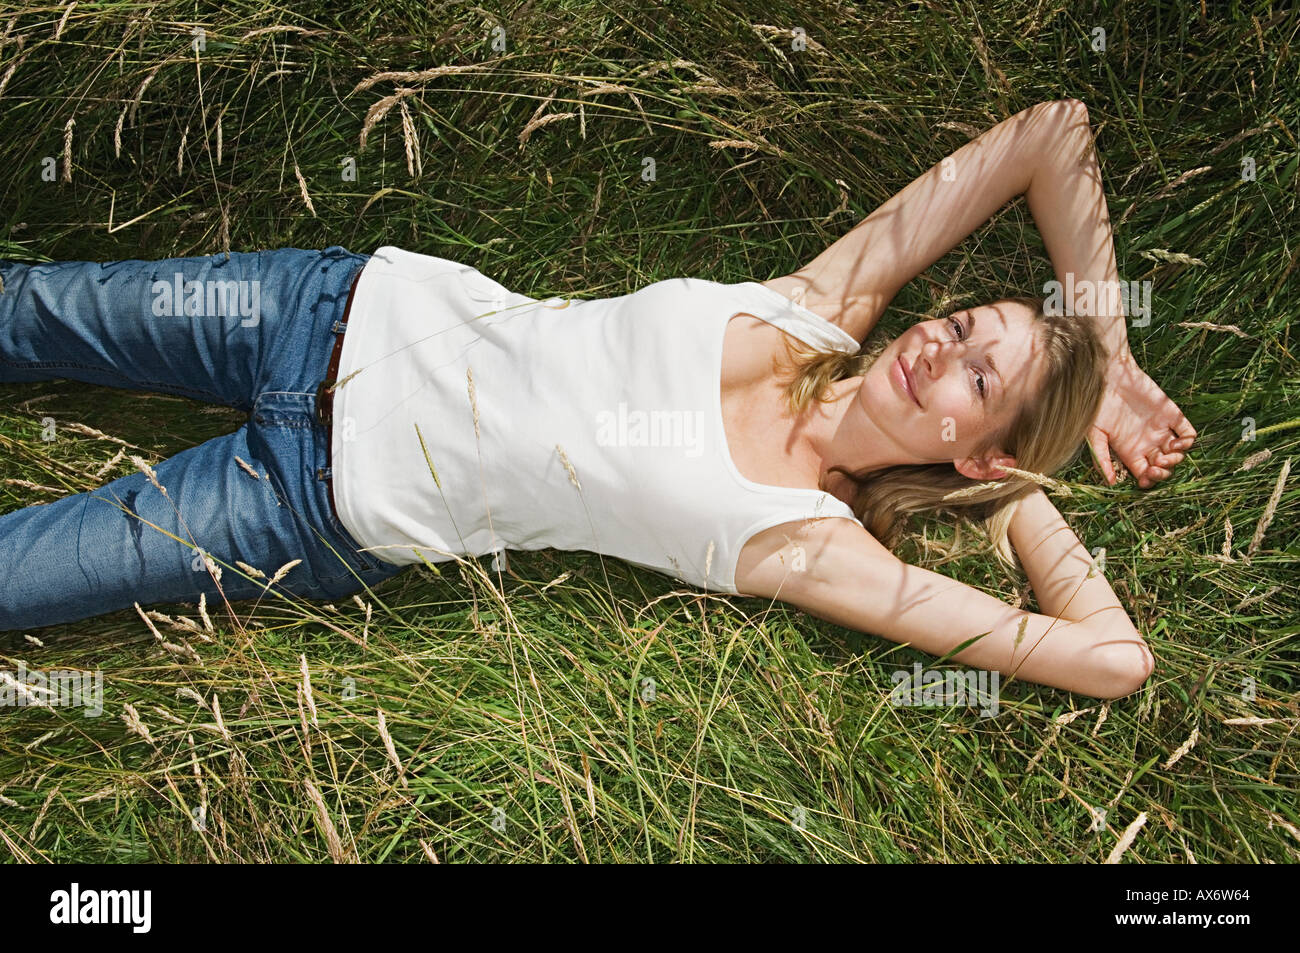 Woman lying in a field - Stock Image